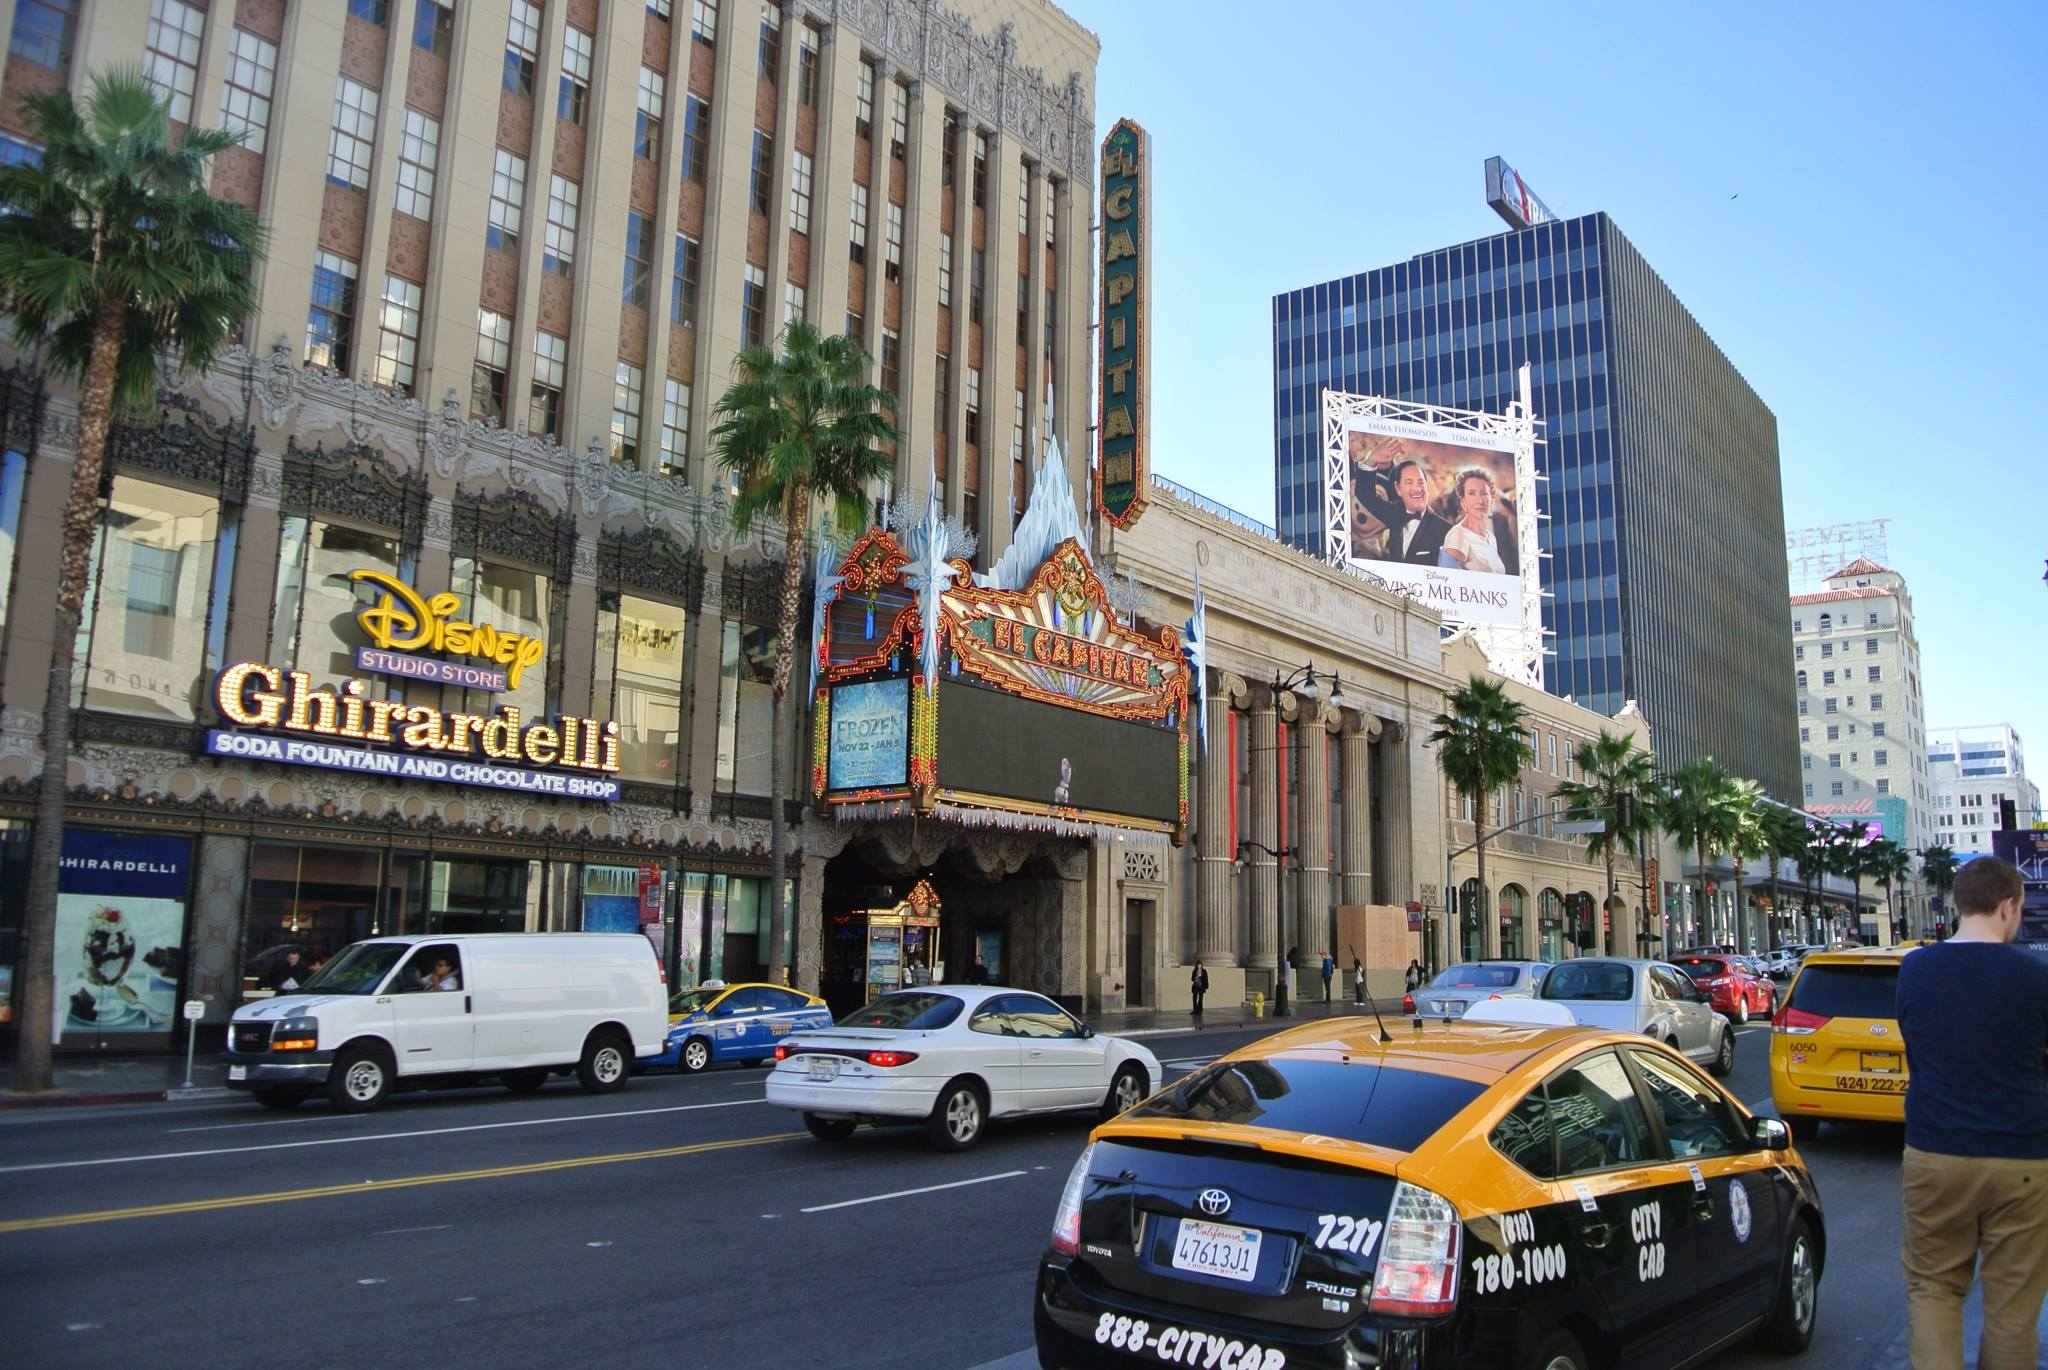 Exciting view of Hollywood Boulevard